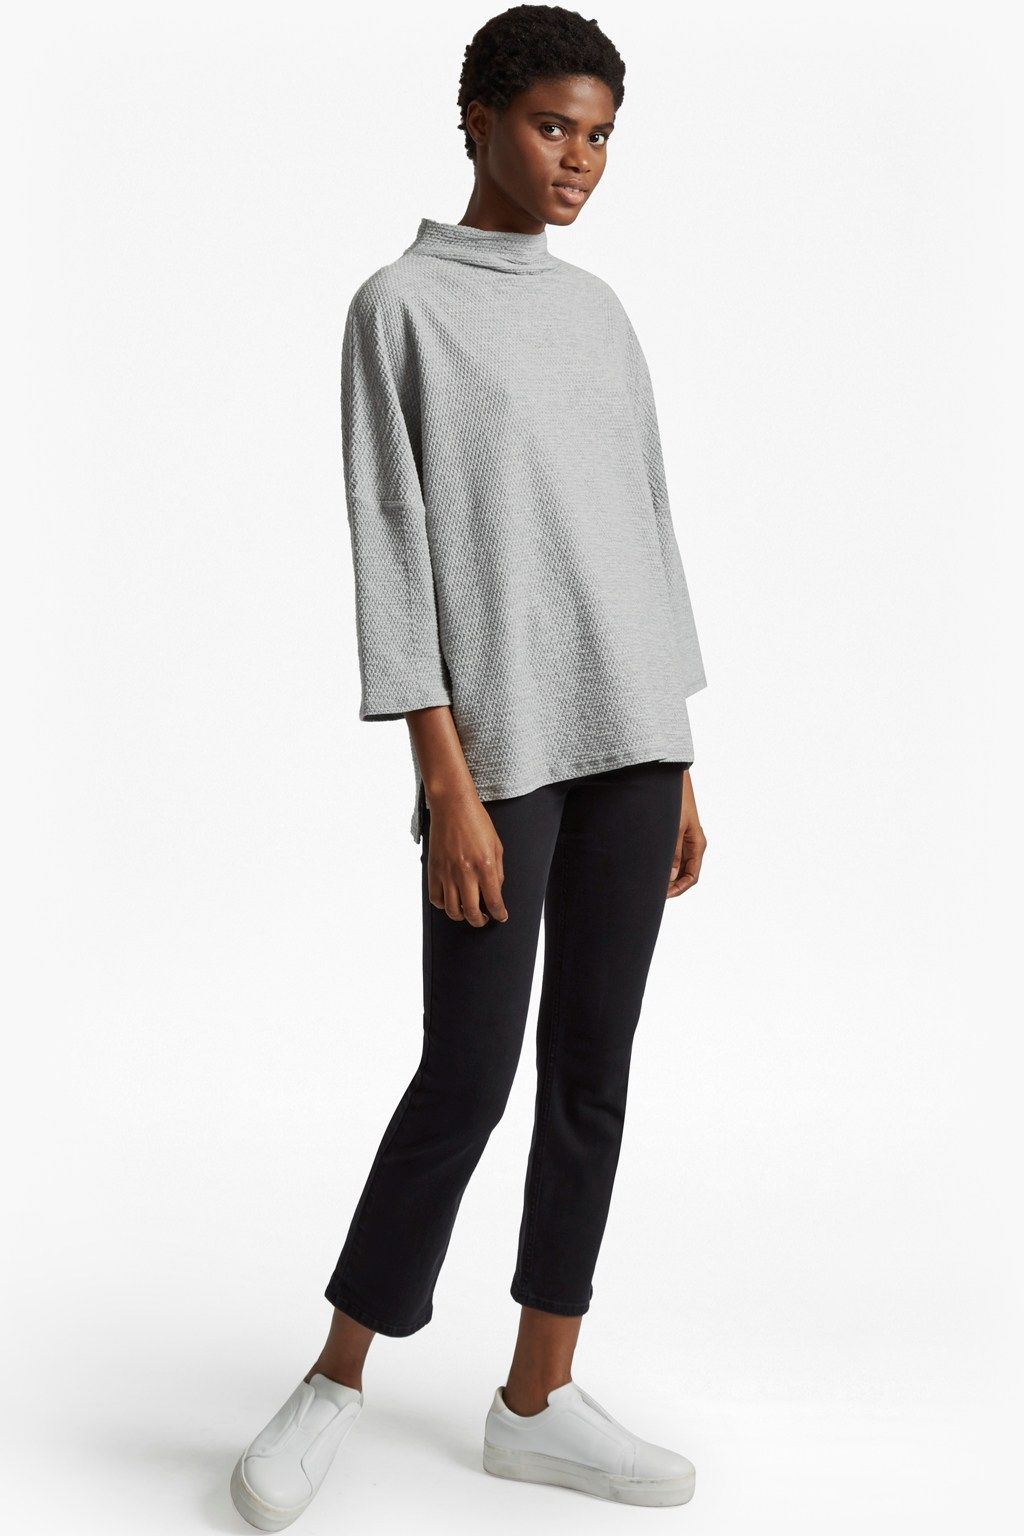 Sudan Pique Mock Neck Jumper | Tops | French Connection Usa